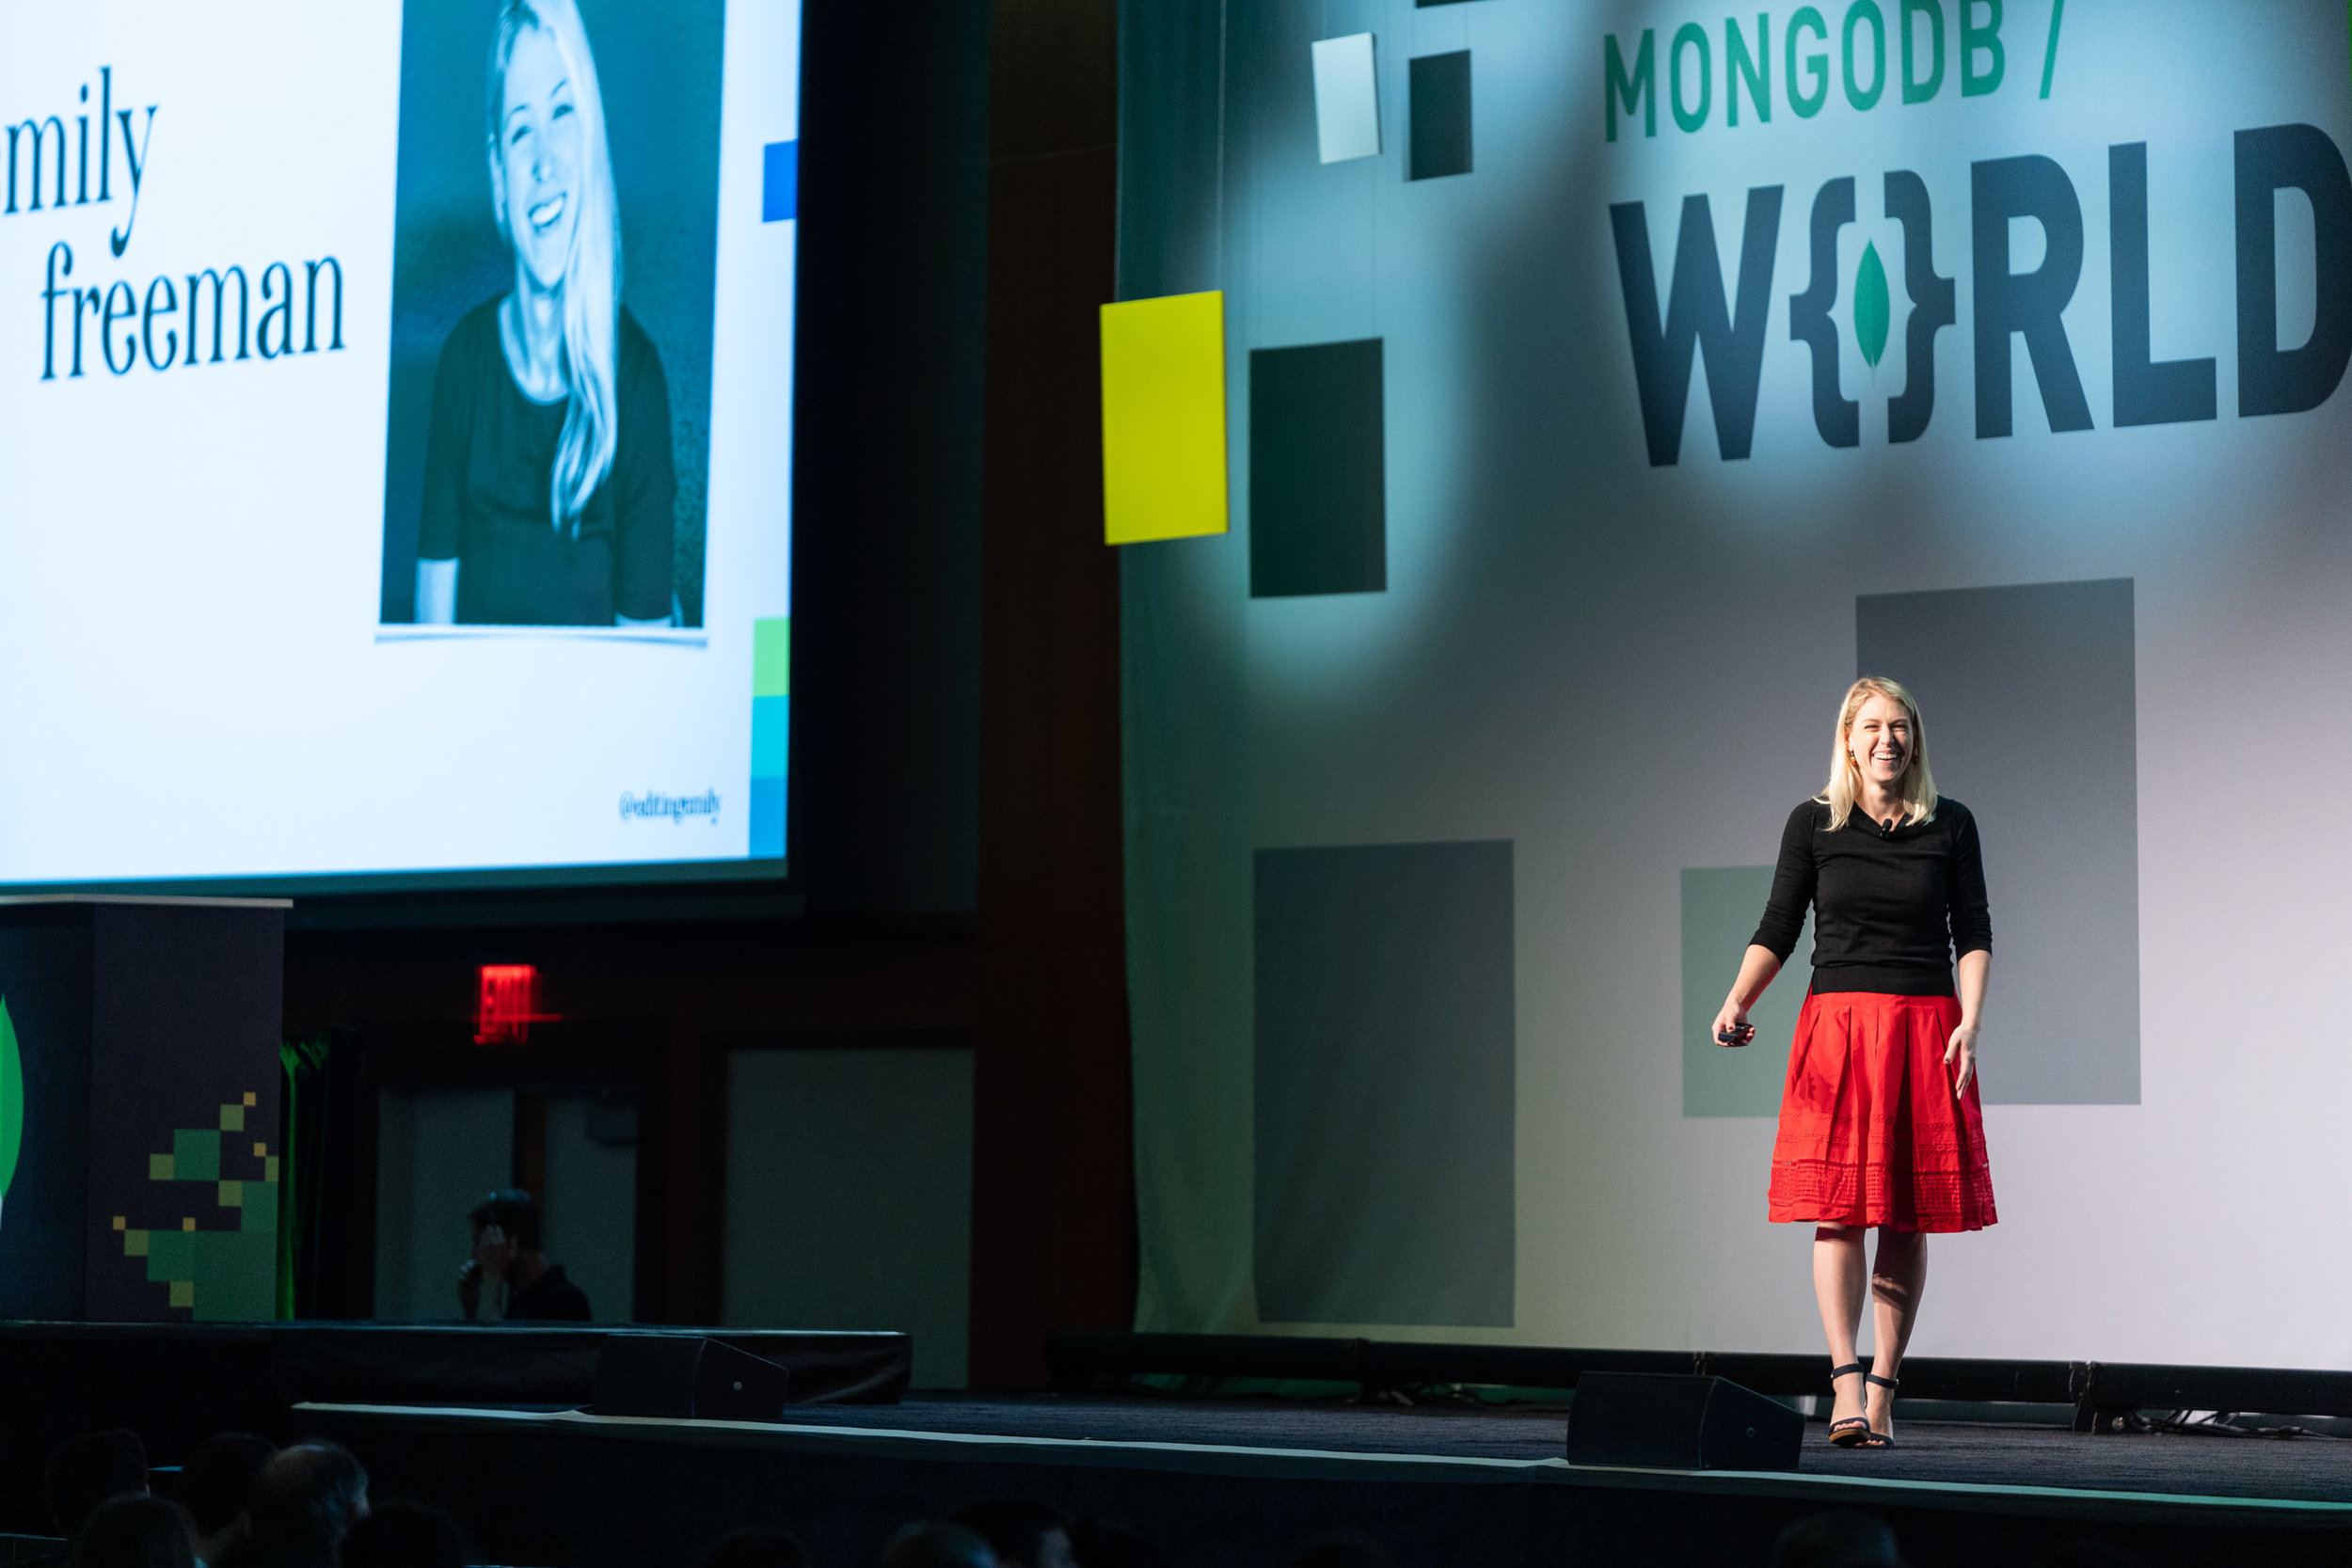 MongoDB World cam 2 6-18-2019-0508.jpg